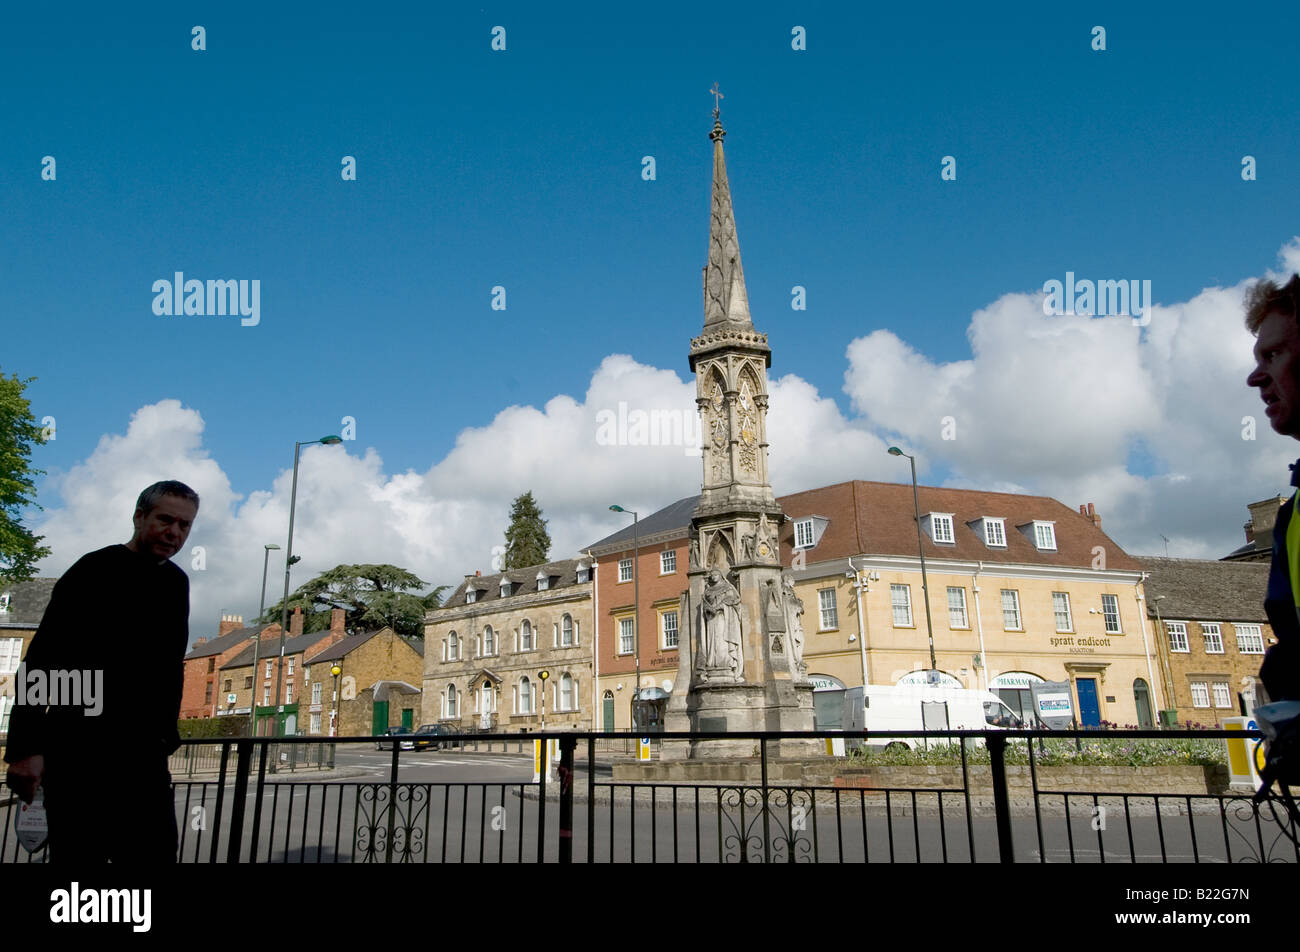 The Banbury Cross famous from the nursery rhyme in the centre of the Oxfordshire town - Stock Image